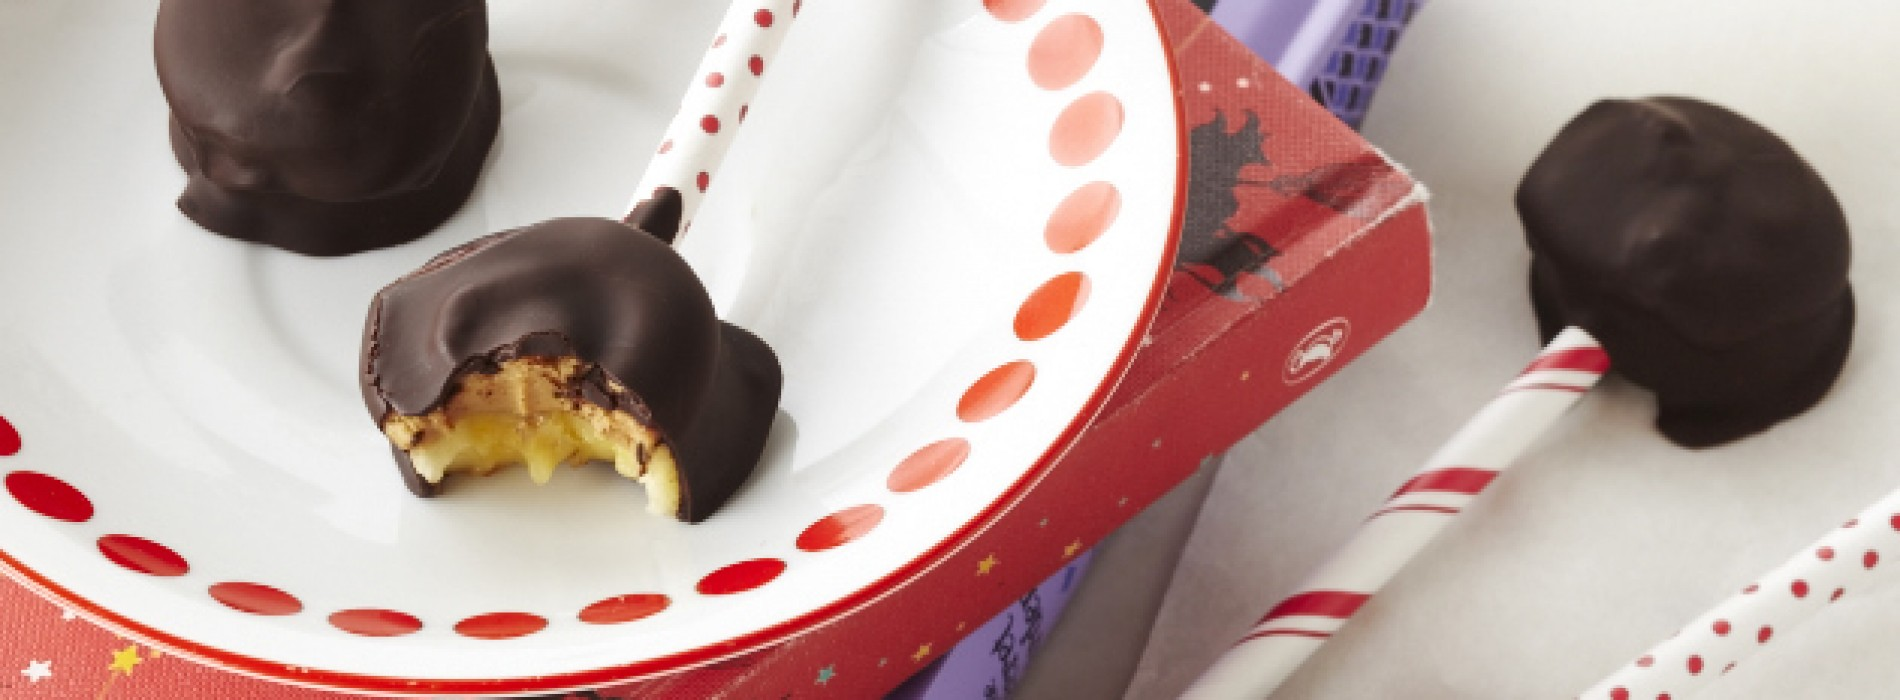 No-Bake Banana and Peanut Butter Lollipops with Dark Chocolate